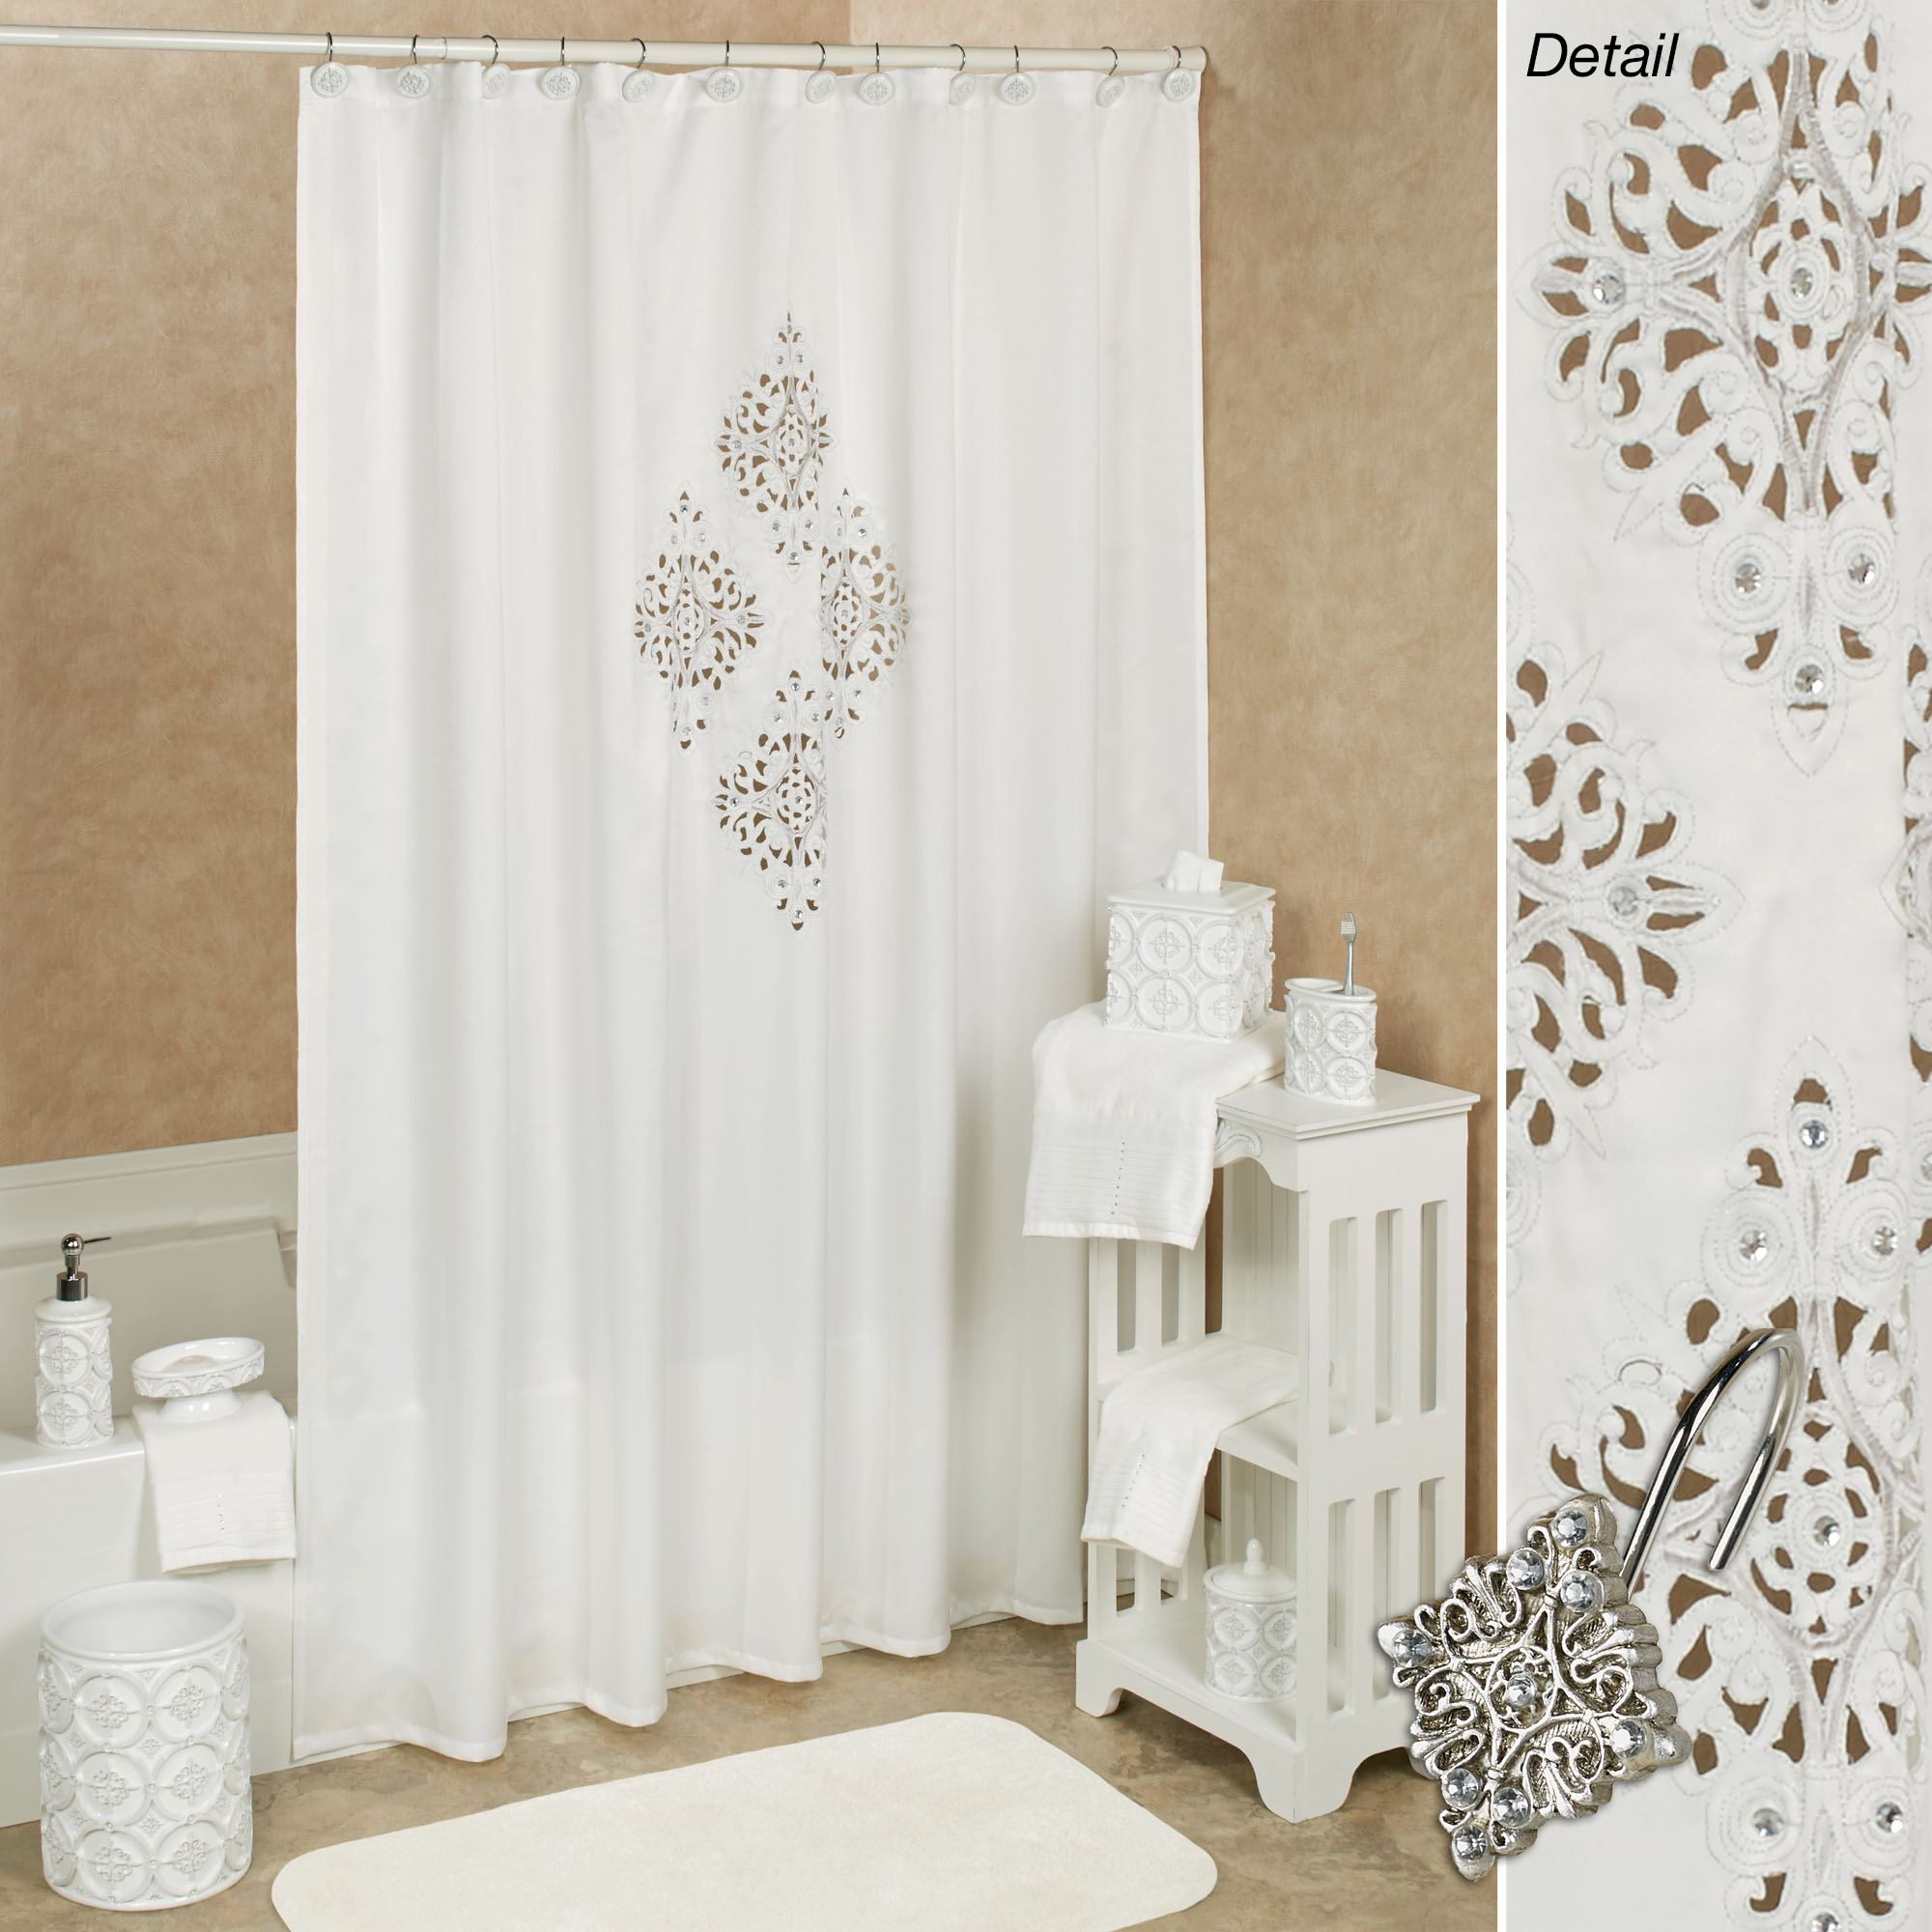 Bon Opulent Shower Curtain Off White 70 X 72